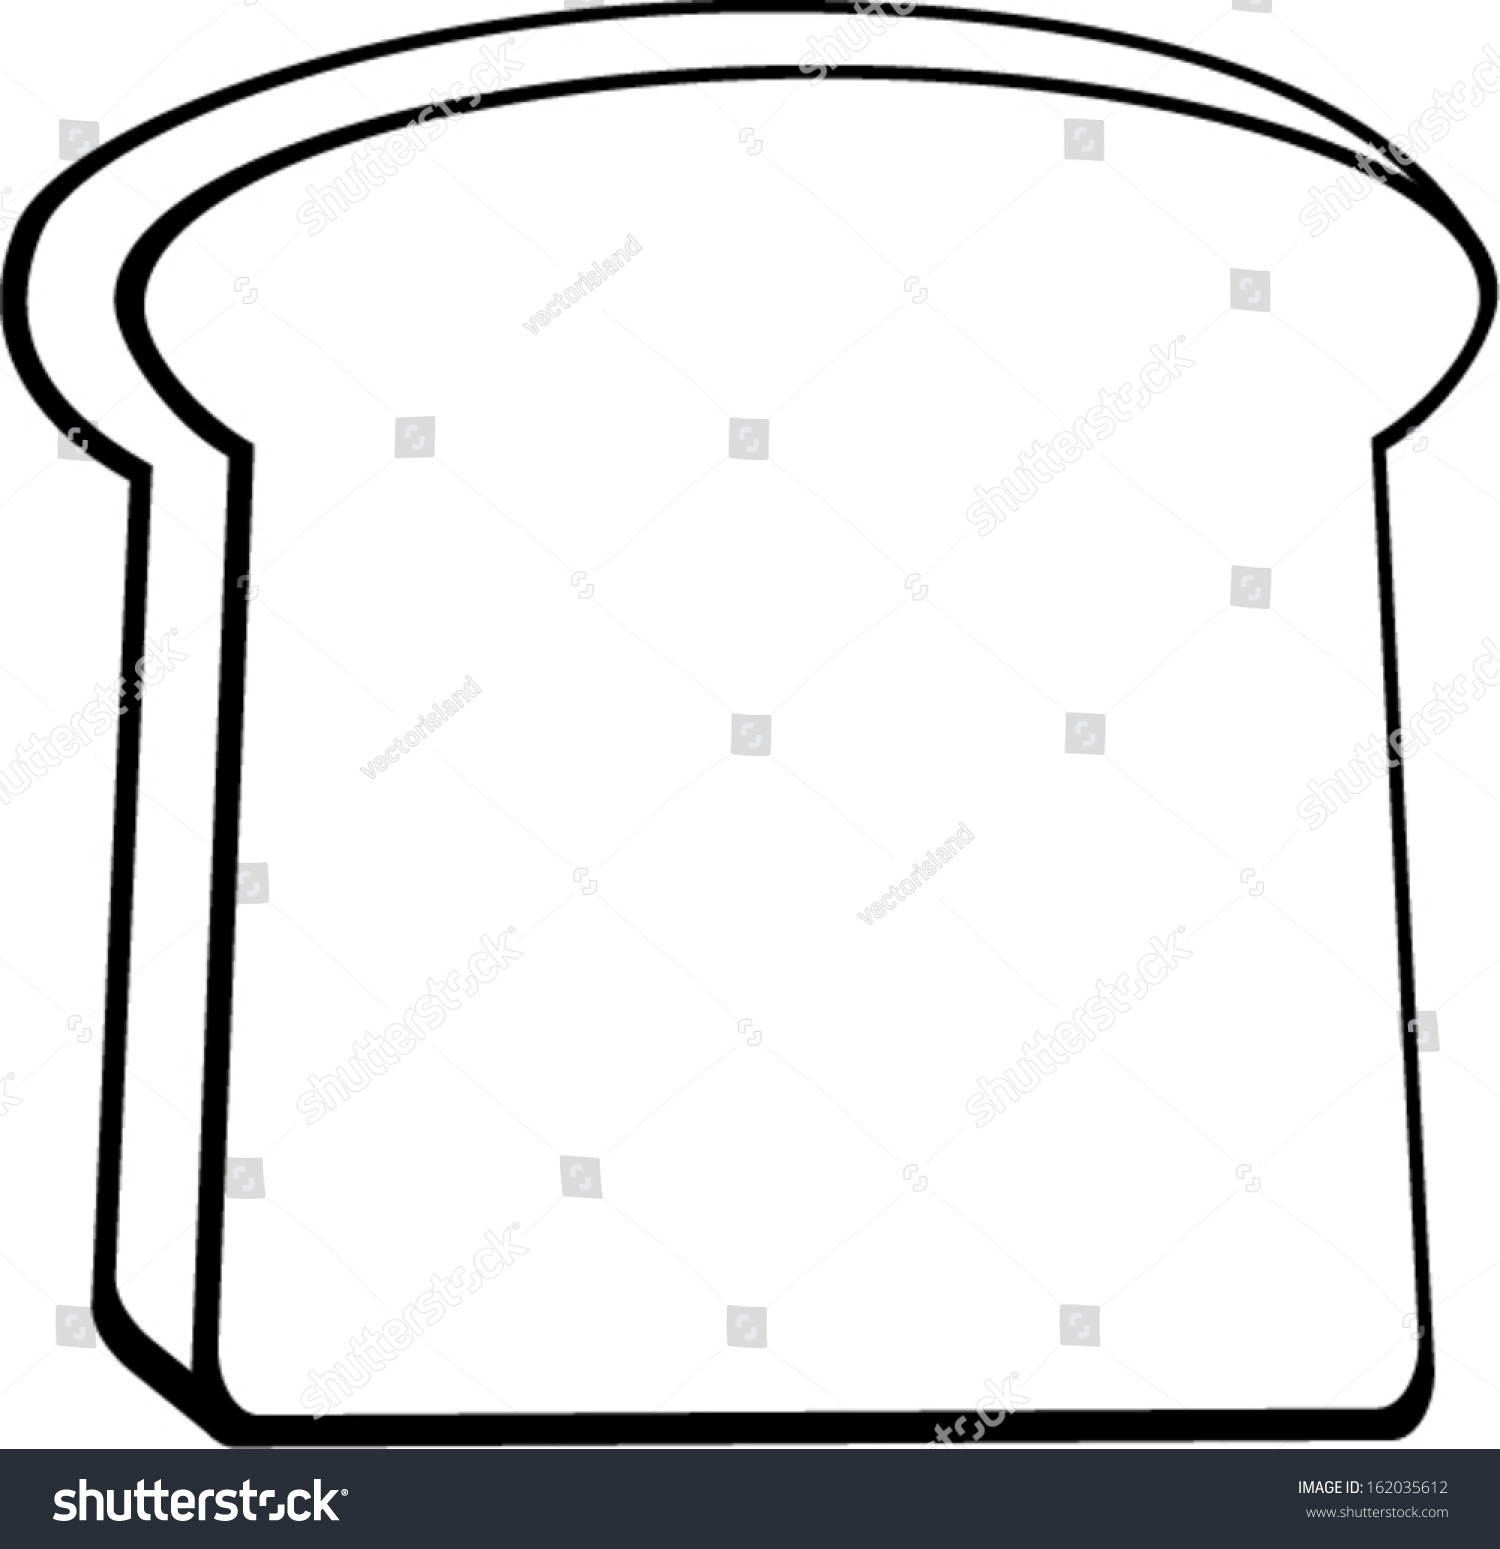 1500x1549 Toast Clipart Outline